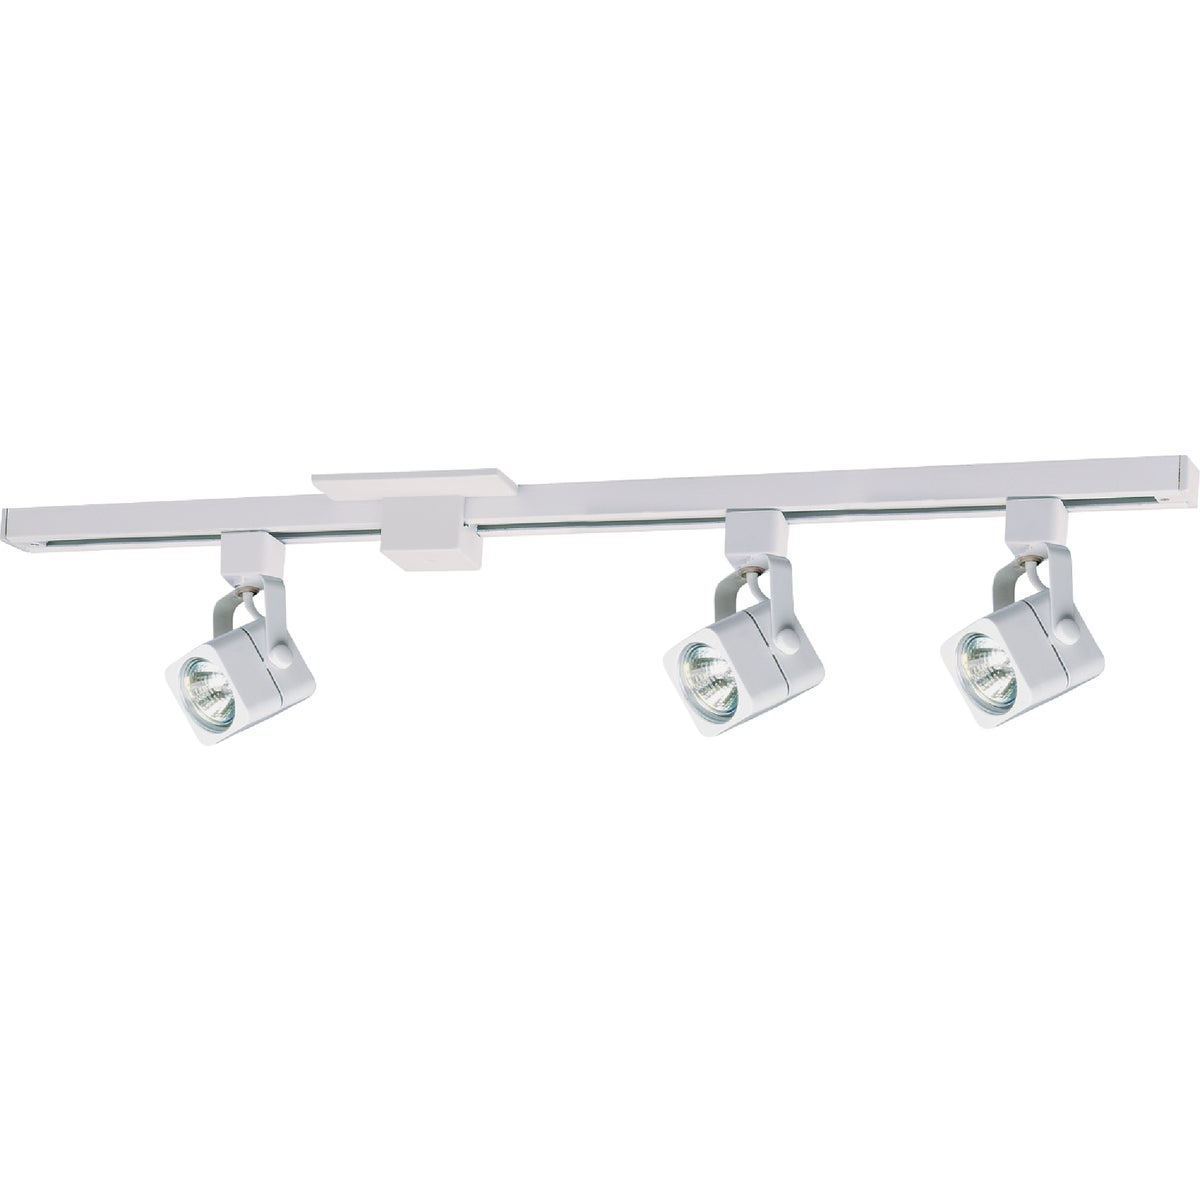 4' WHT 3HD TRACK FIXTURE - AO1012/4-3-WH-120V by Liteline Corporation